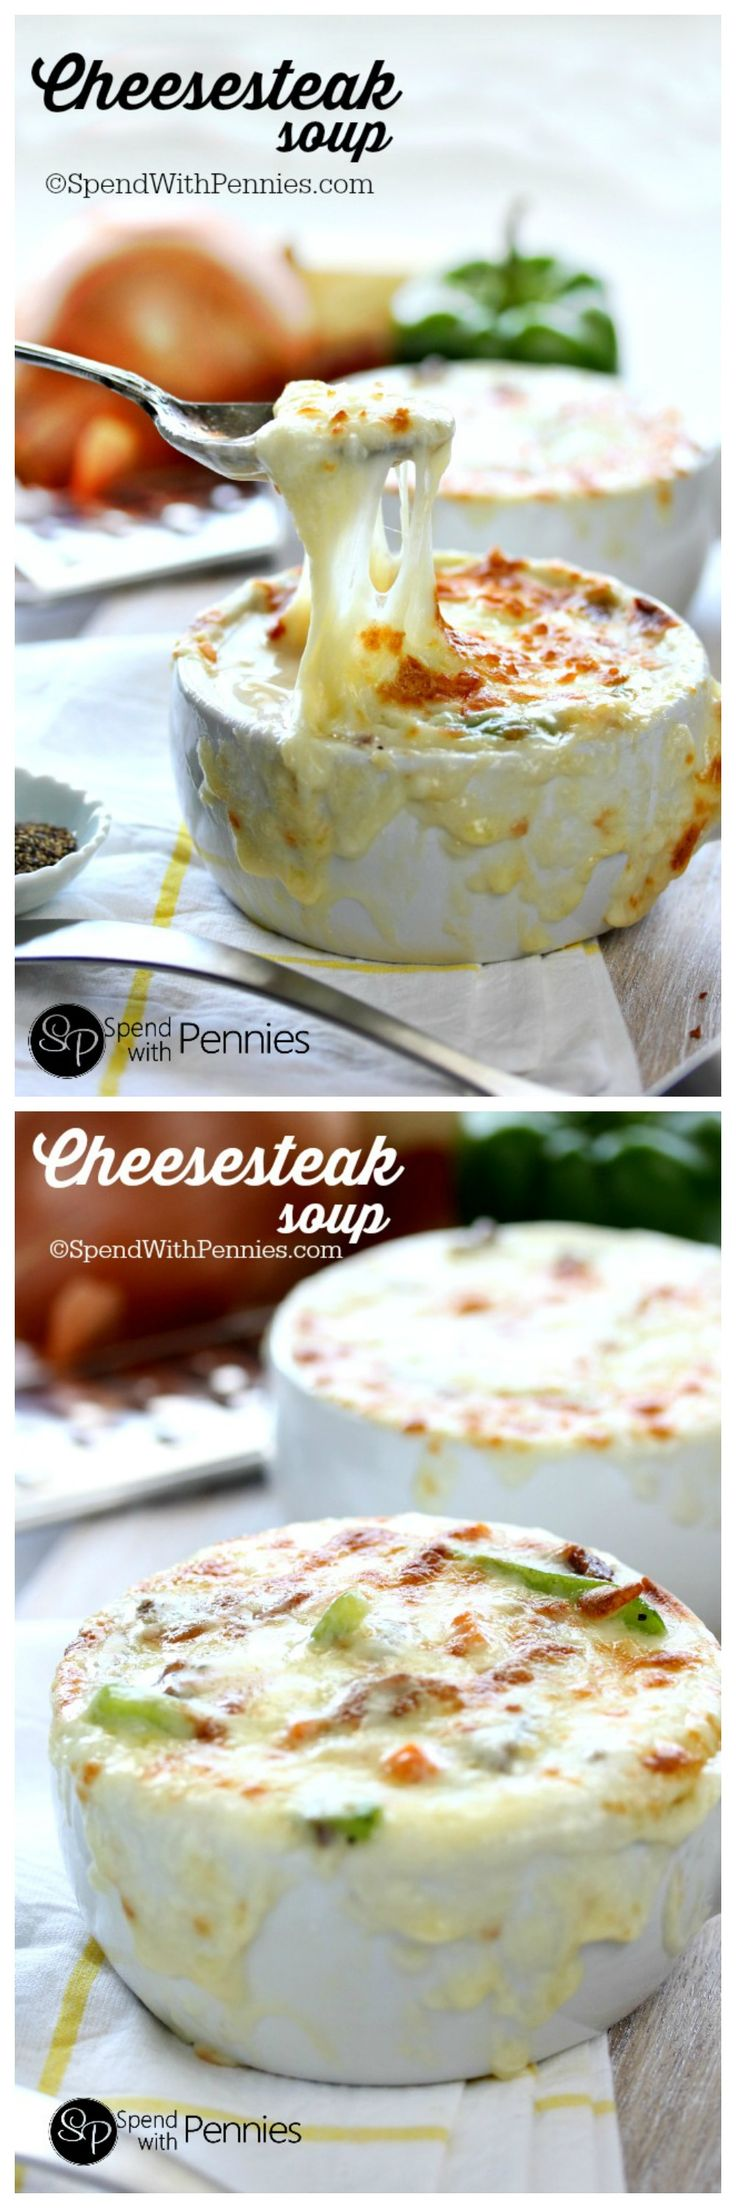 Baked Cheesesteak Soup! Loaded with beef, peppers and cheese this creamy cheesy…